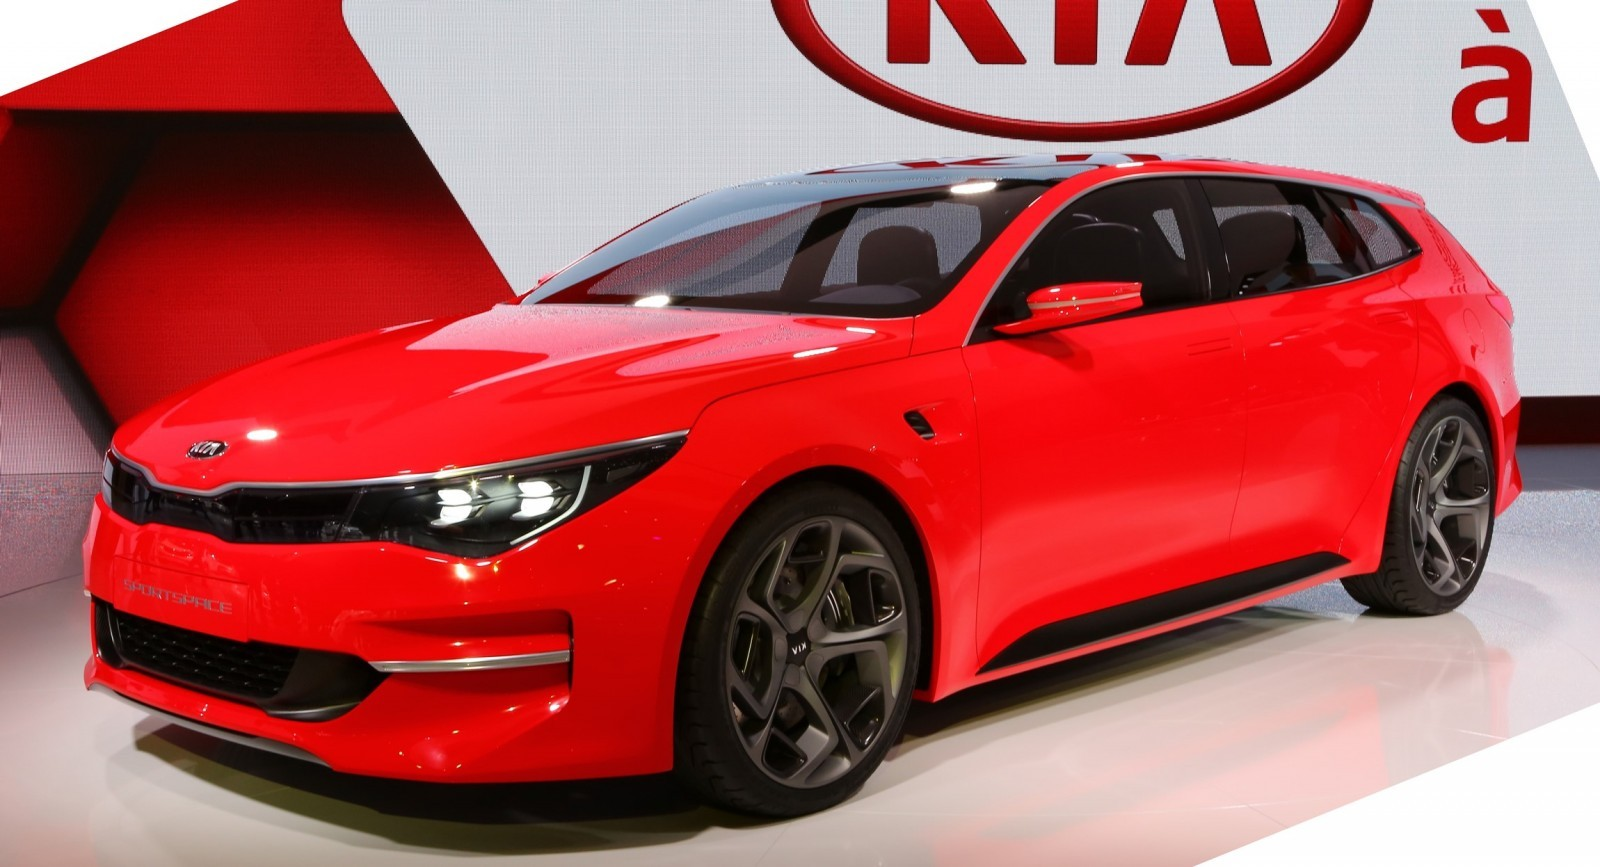 Kia SPORTSPACE Concept unveil-64210